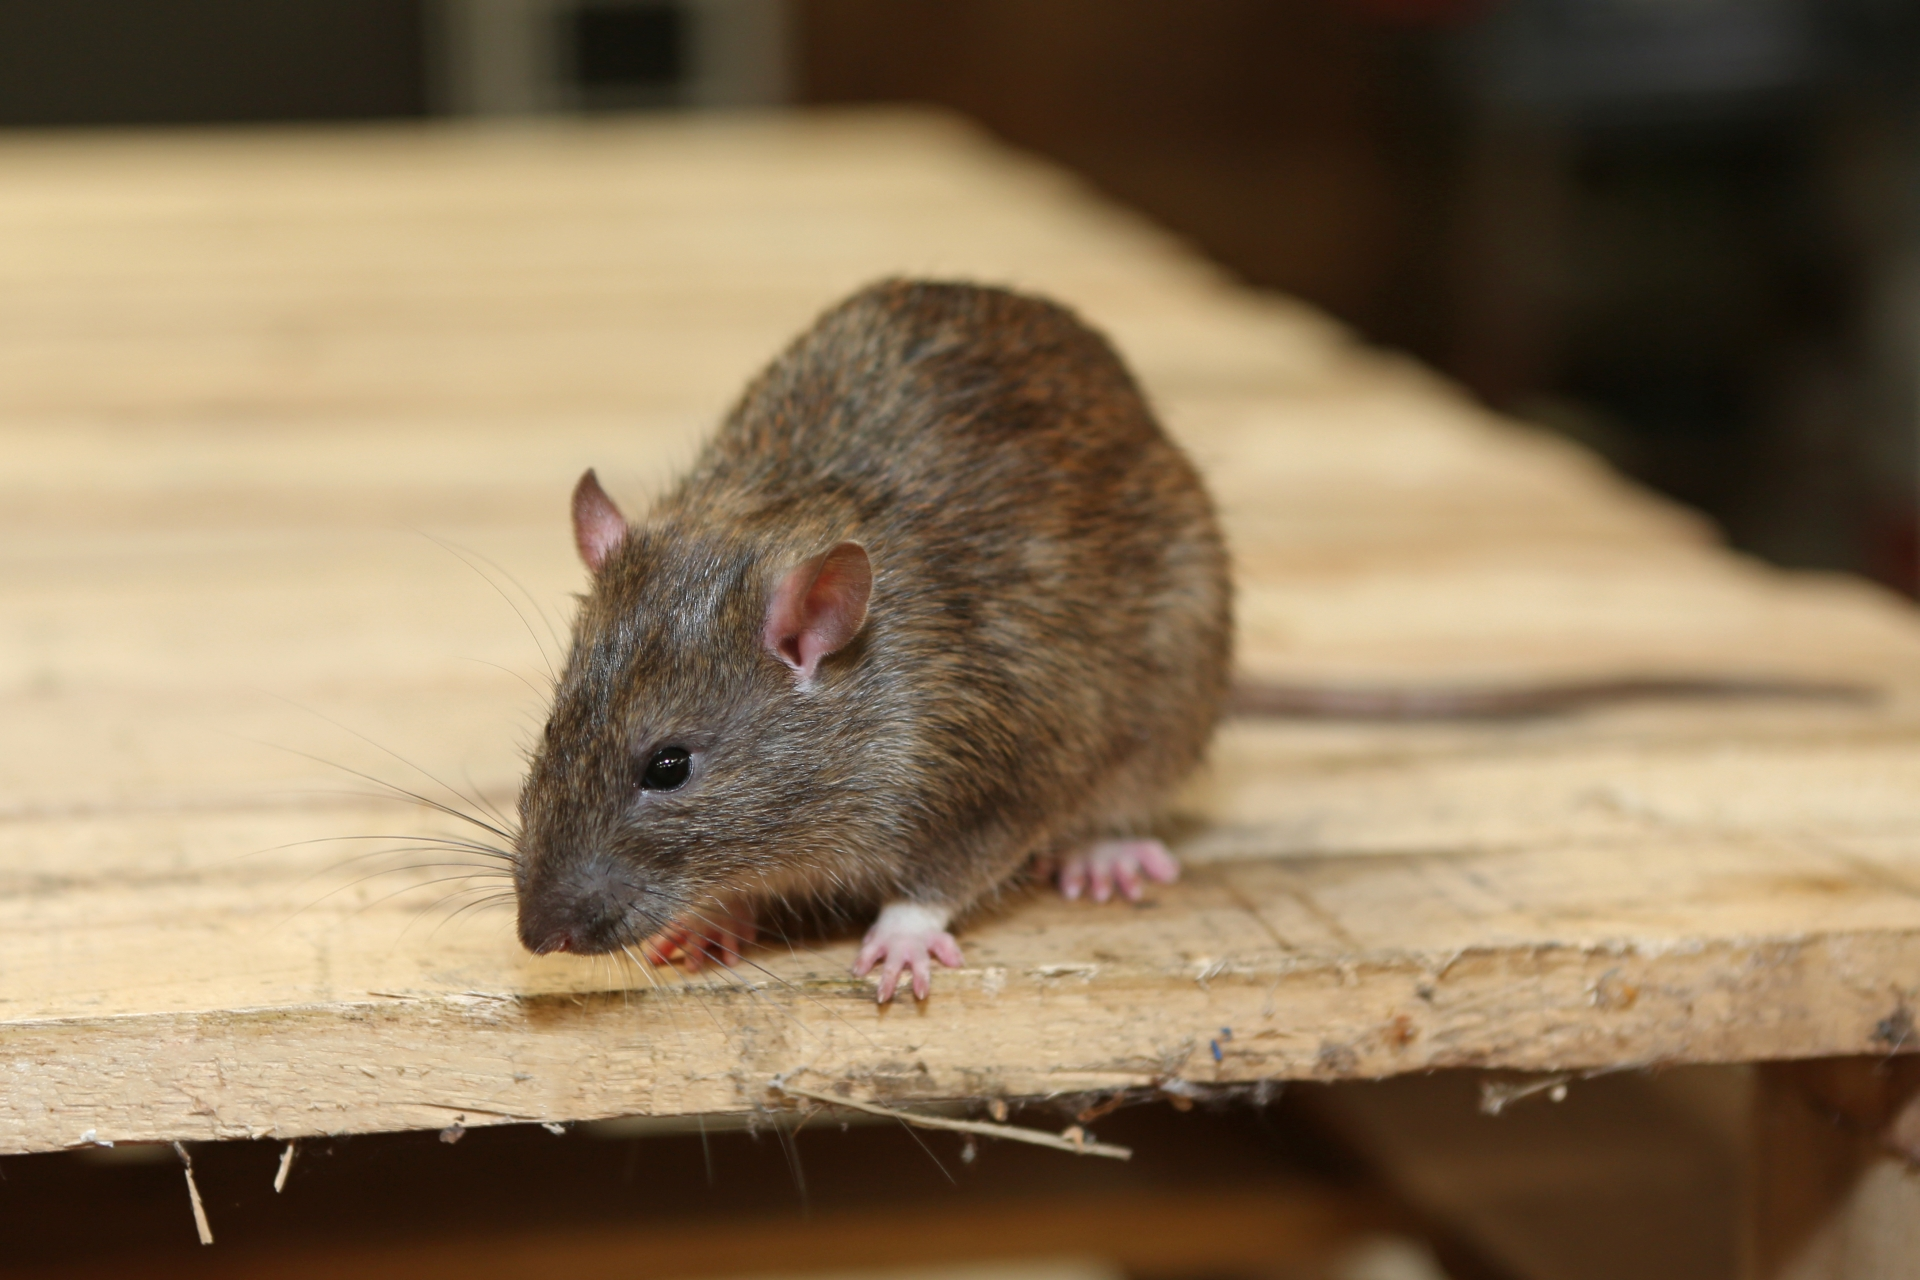 Rat Control, Pest Control in Brixton, SW2. Call Now 020 8166 9746